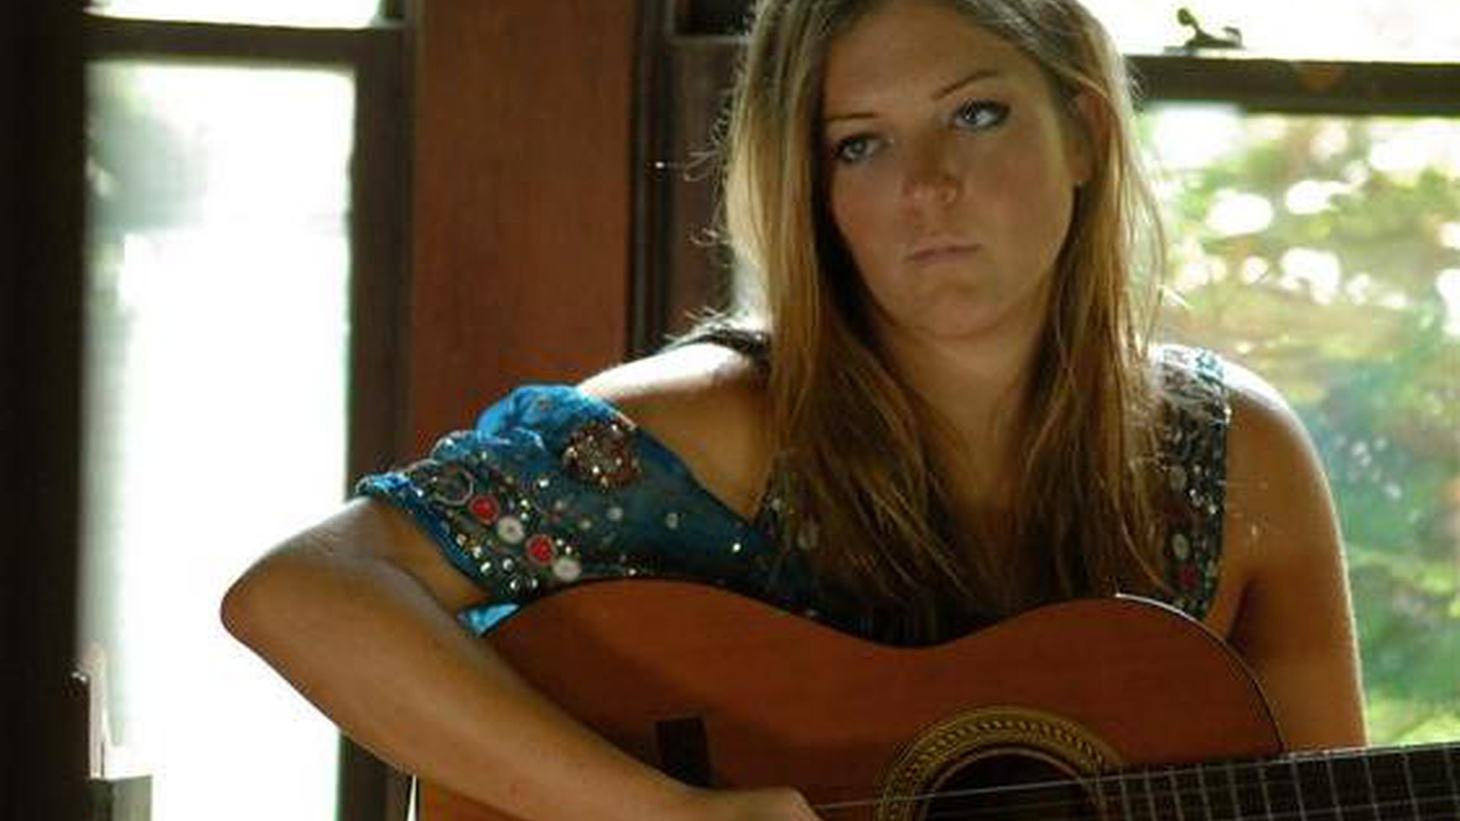 There is no doubt musical talent runs in the family. The daughter of recent Morning Becomes Eclectic guest Rosanne Cash and country musician Rodney Crowell, Chelsea Crowell is forging her own musical direction...